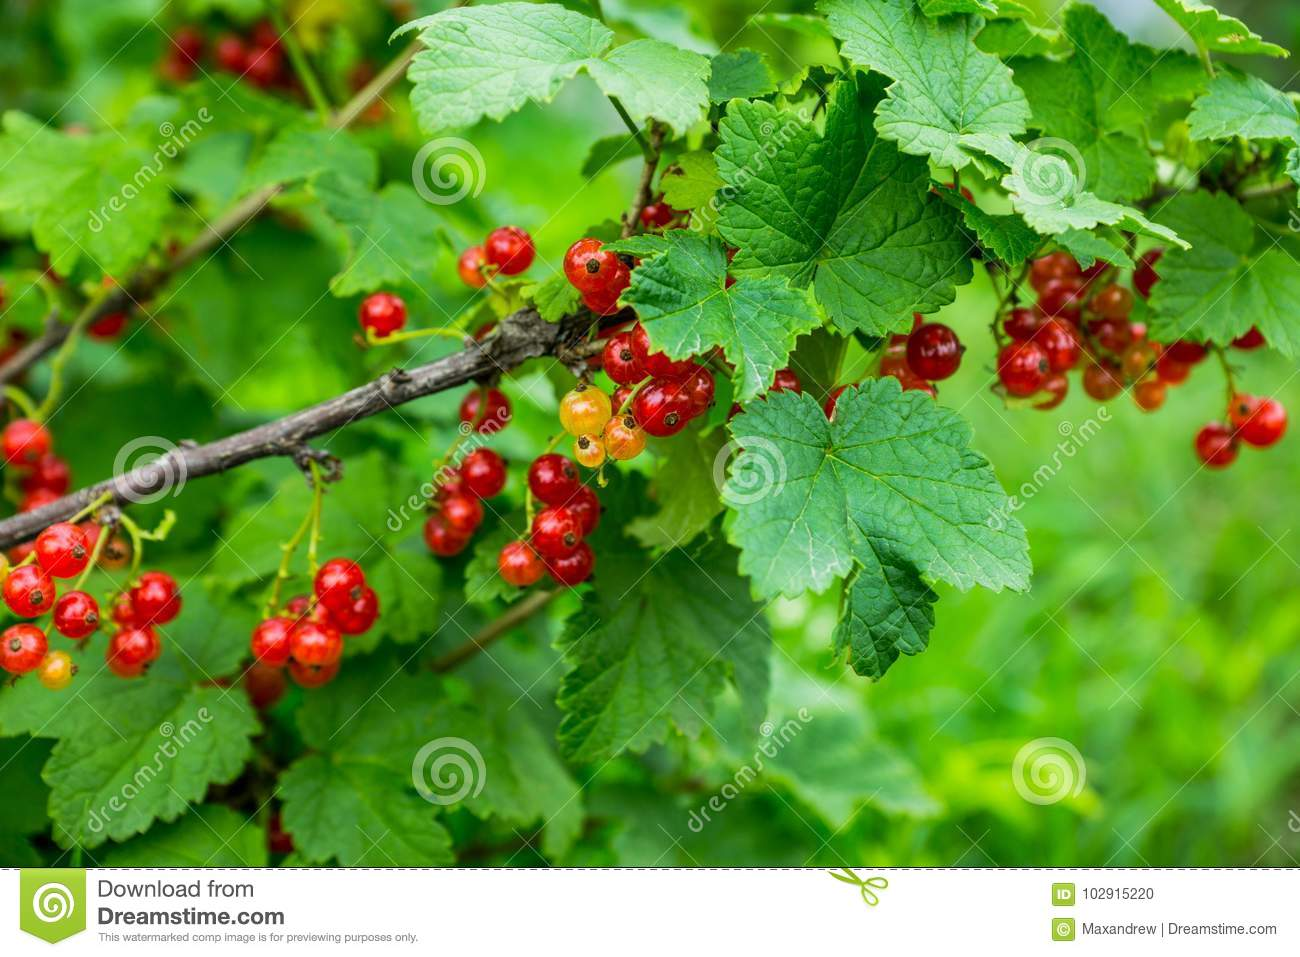 Dream interpretation Currant, what dreams Currant in a dream to see 32